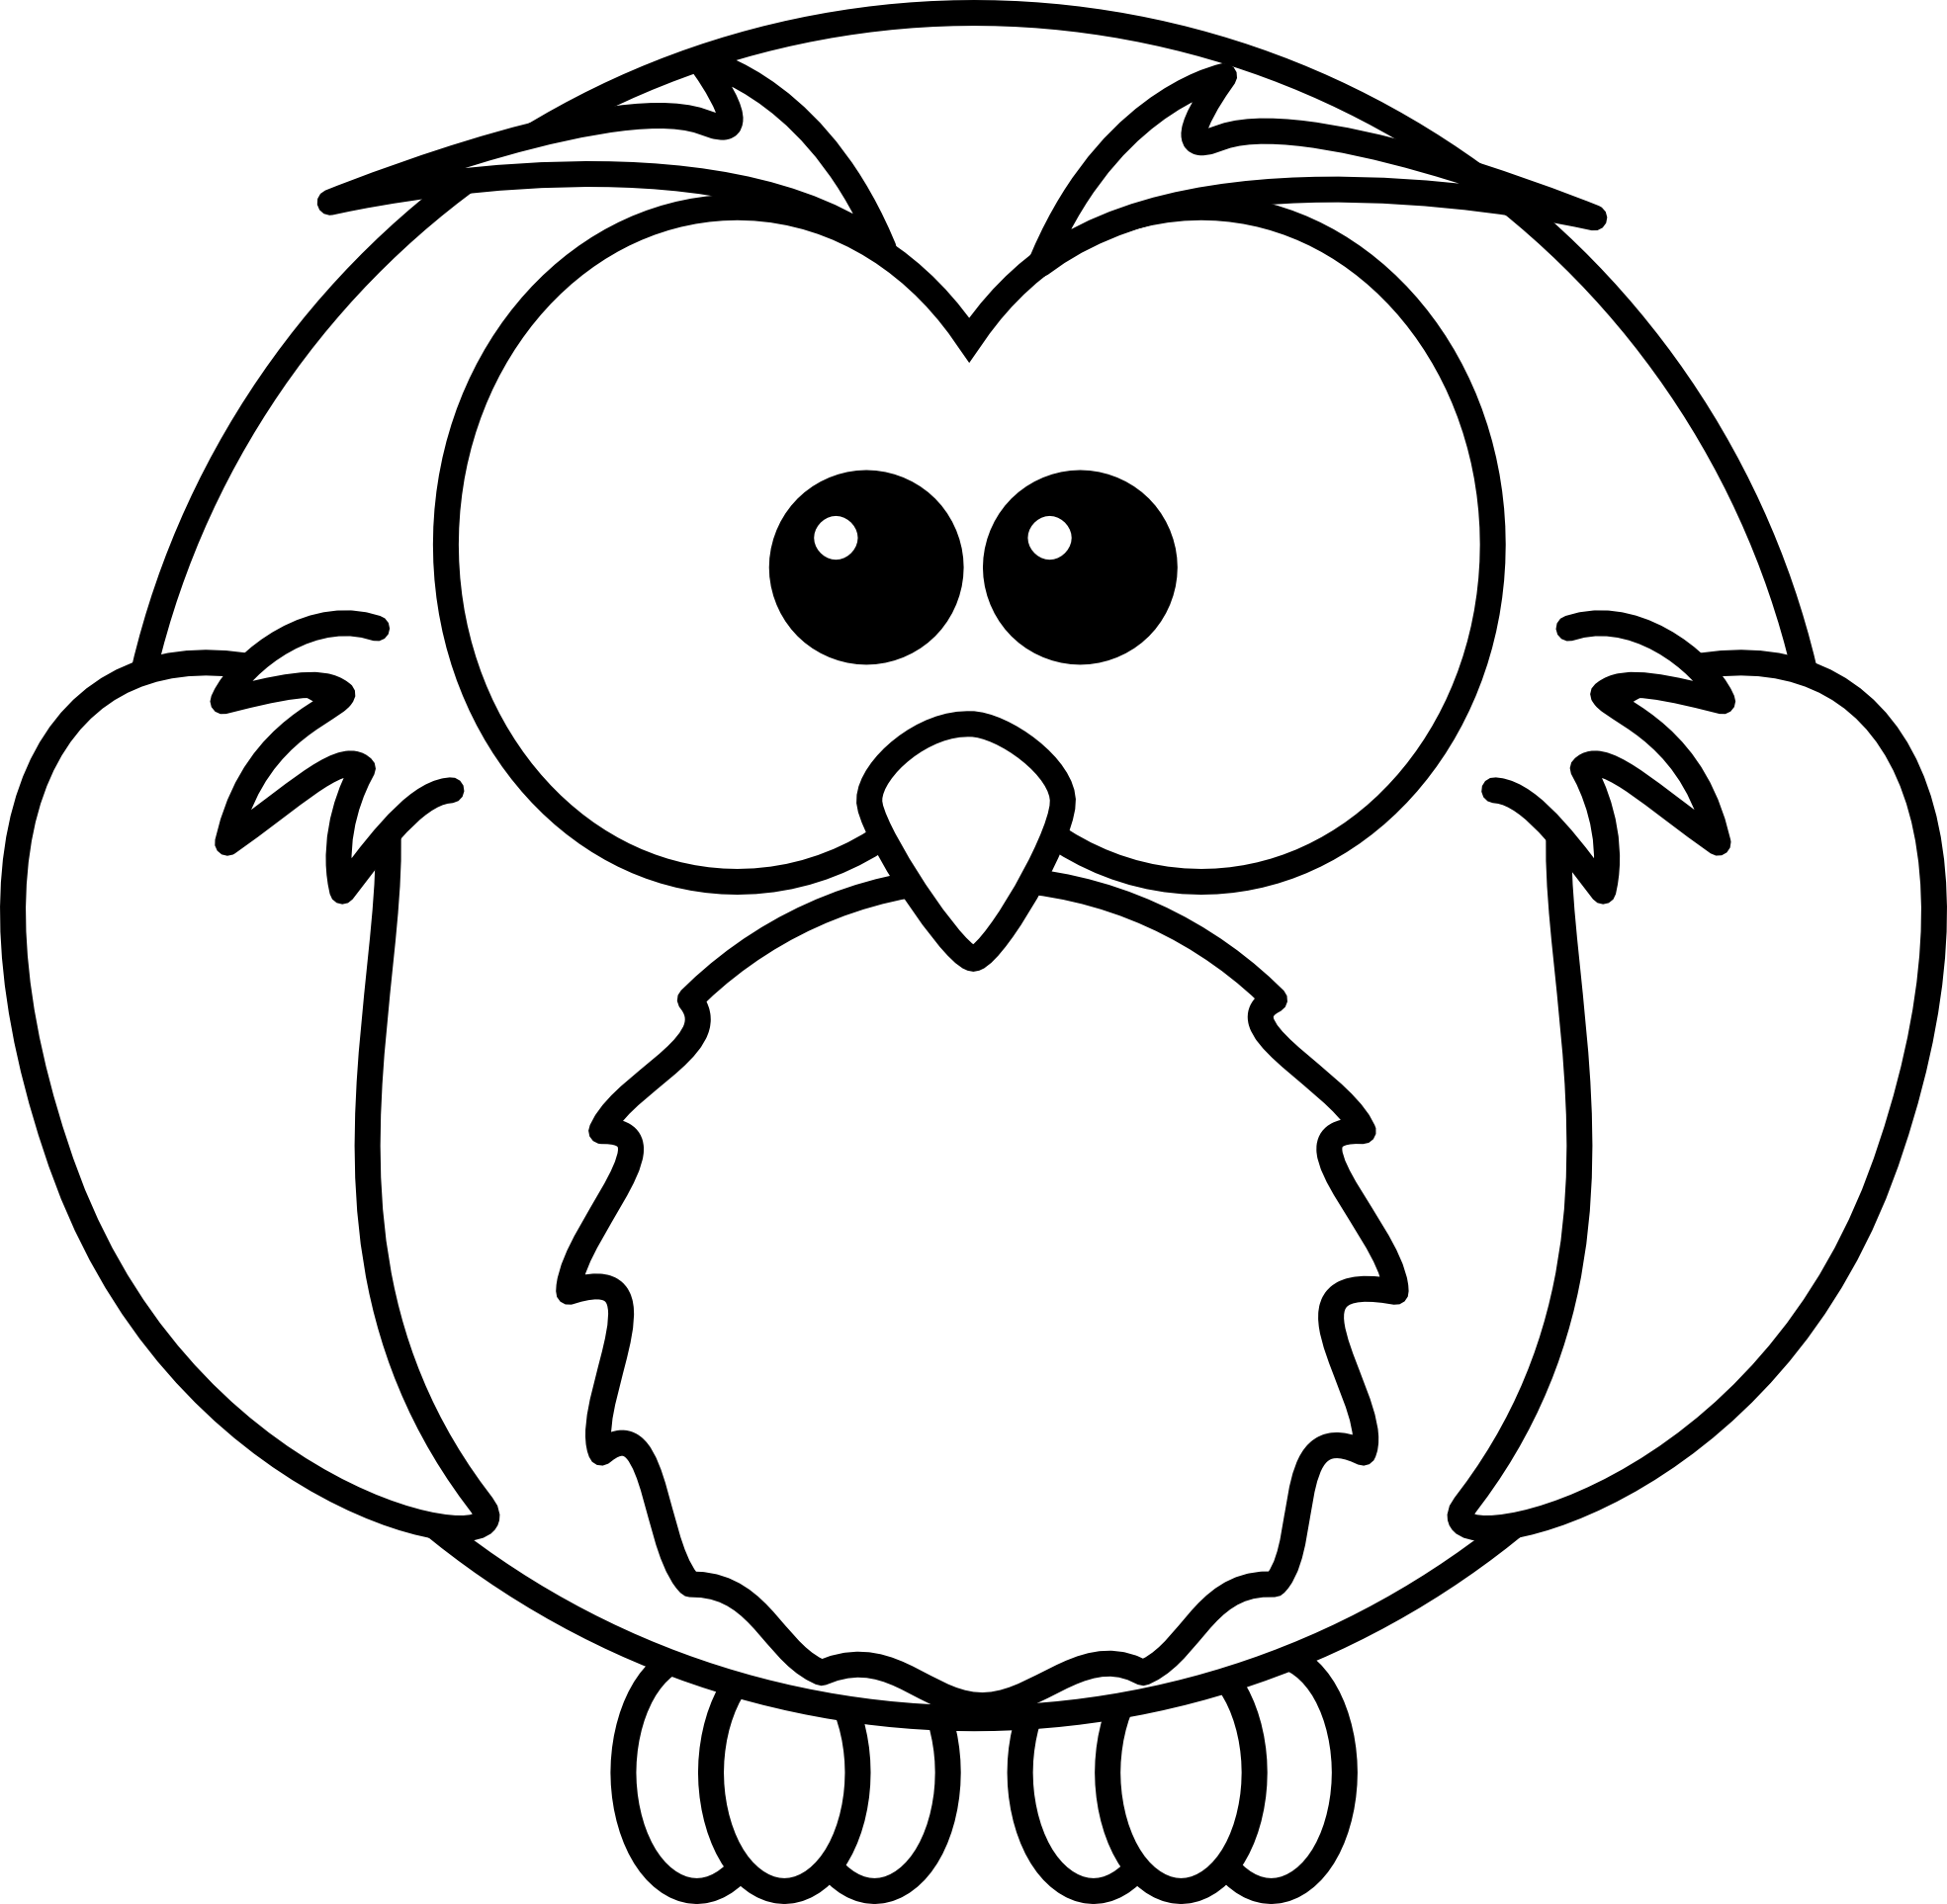 Best Owl Clipart Black and White #28298.